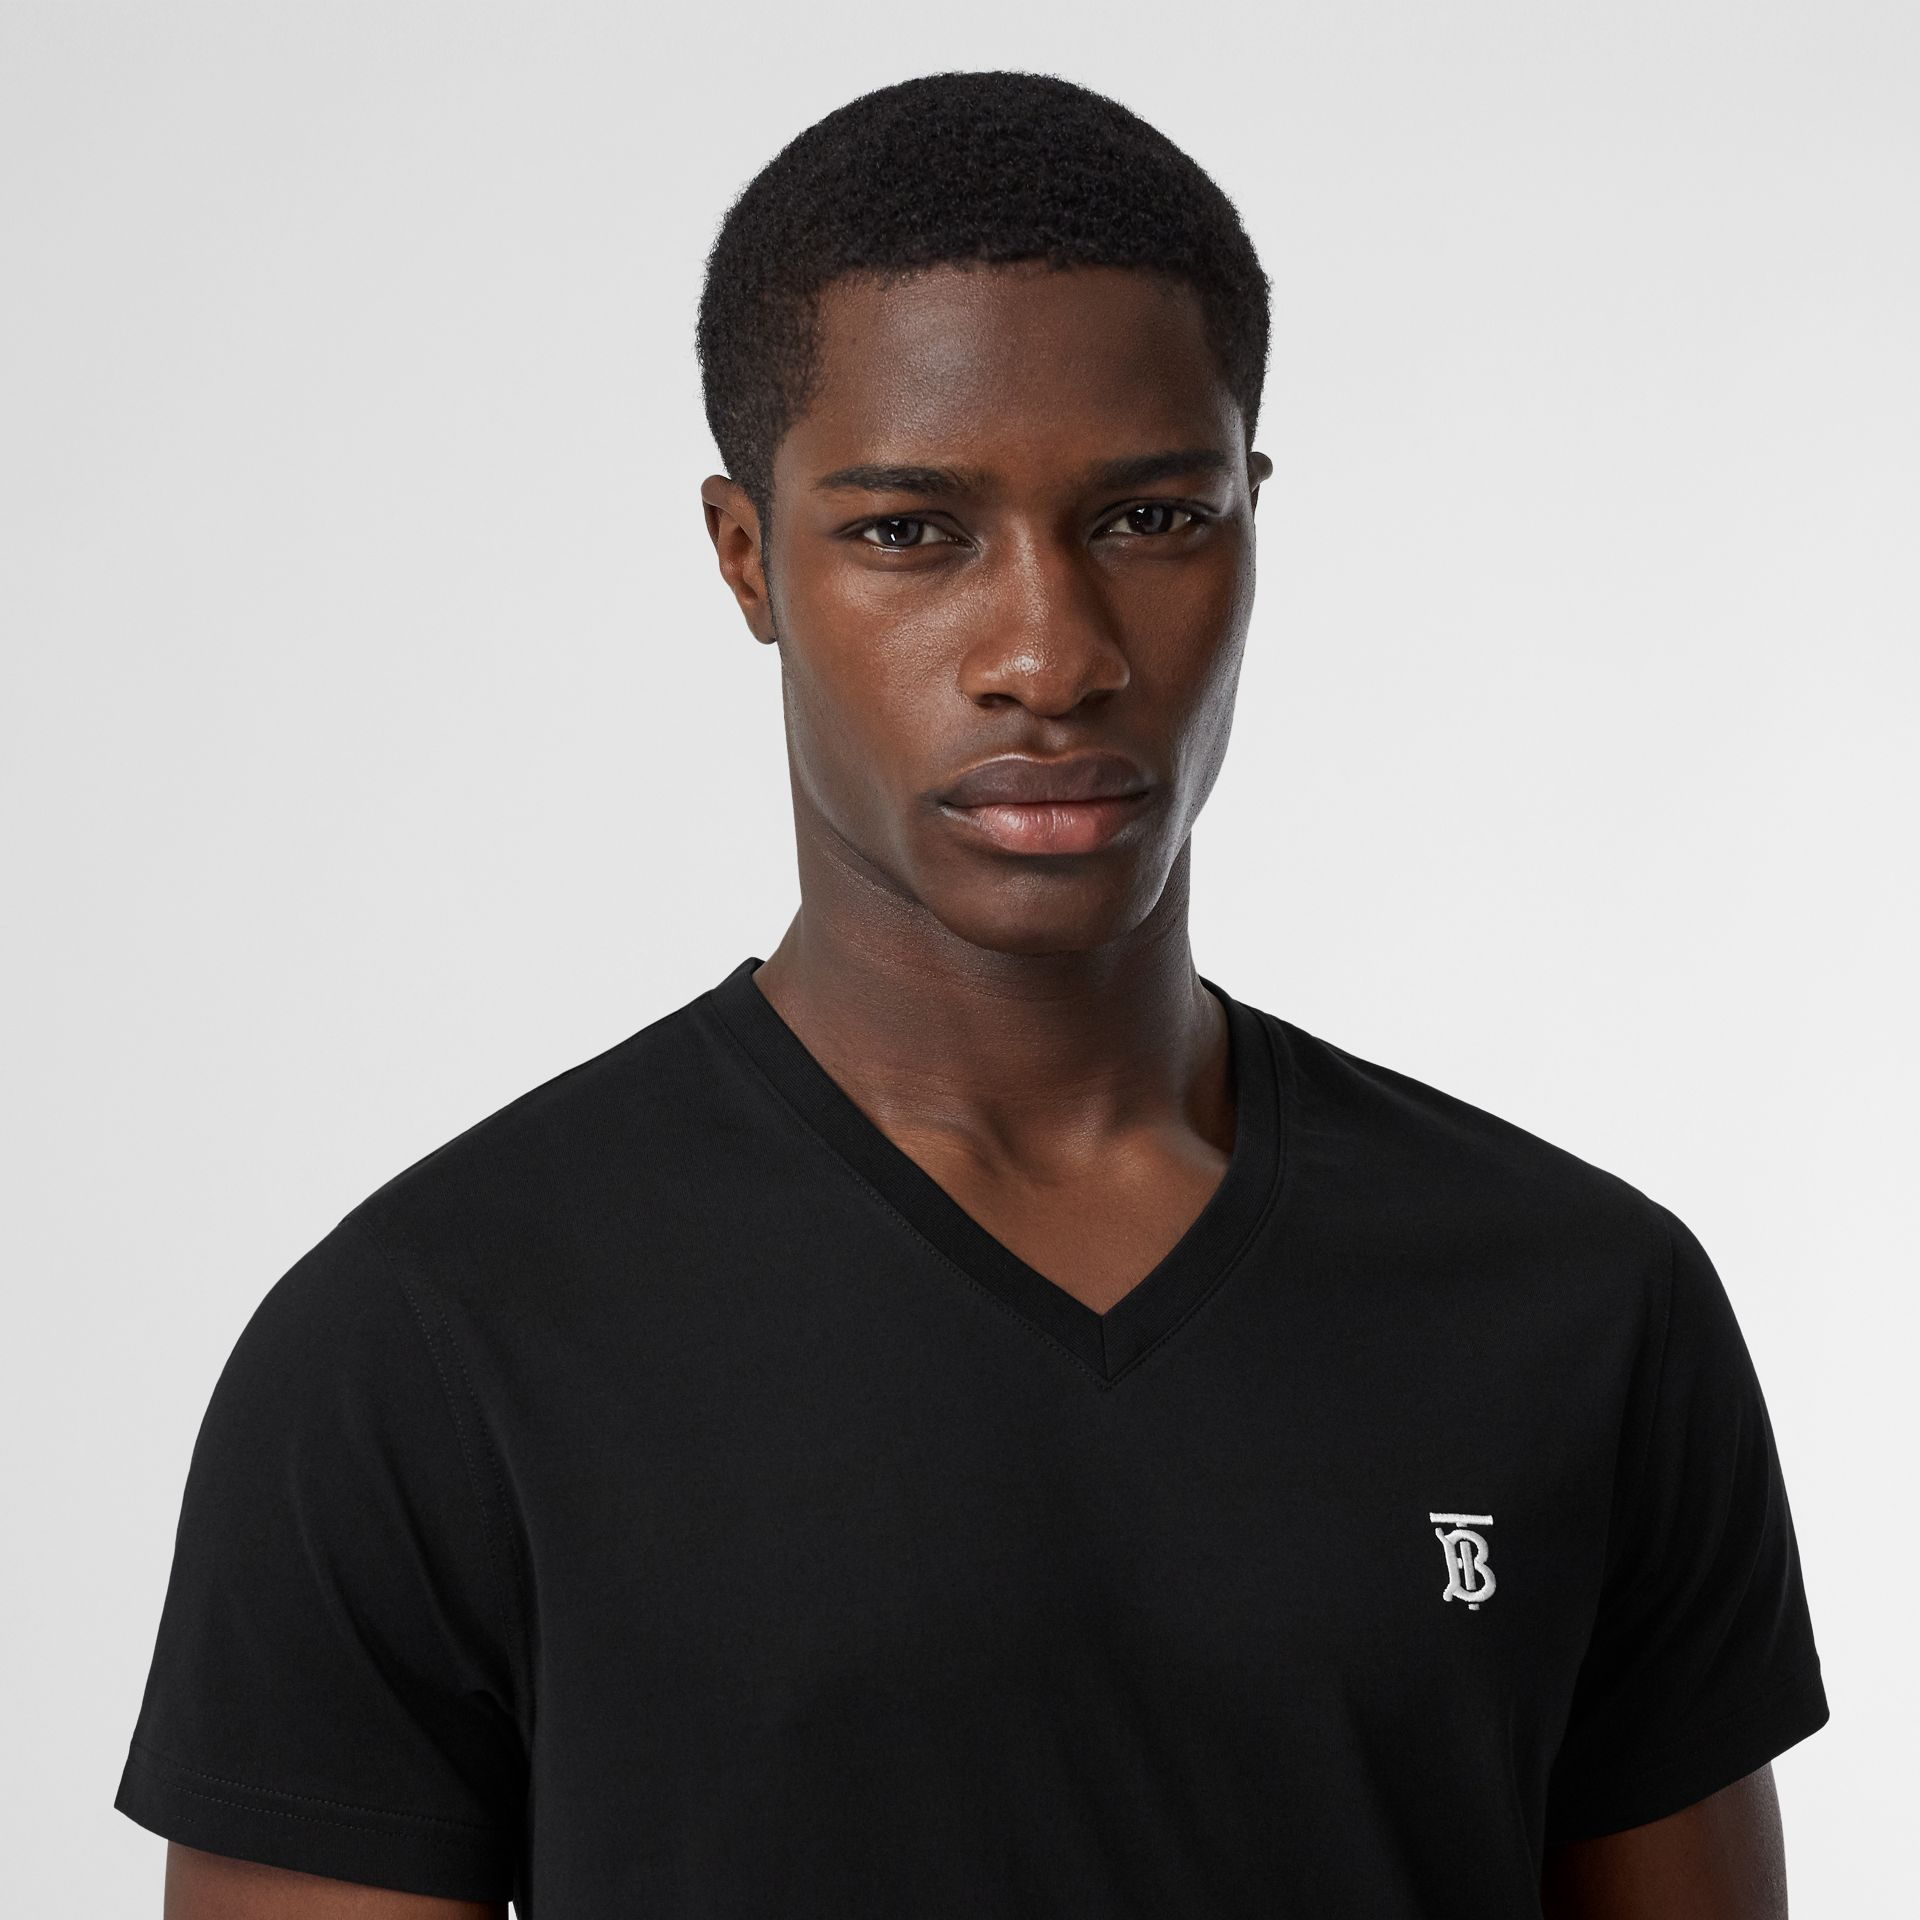 Monogram Motif Cotton V-neck T-shirt in Black - Men | Burberry - gallery image 1